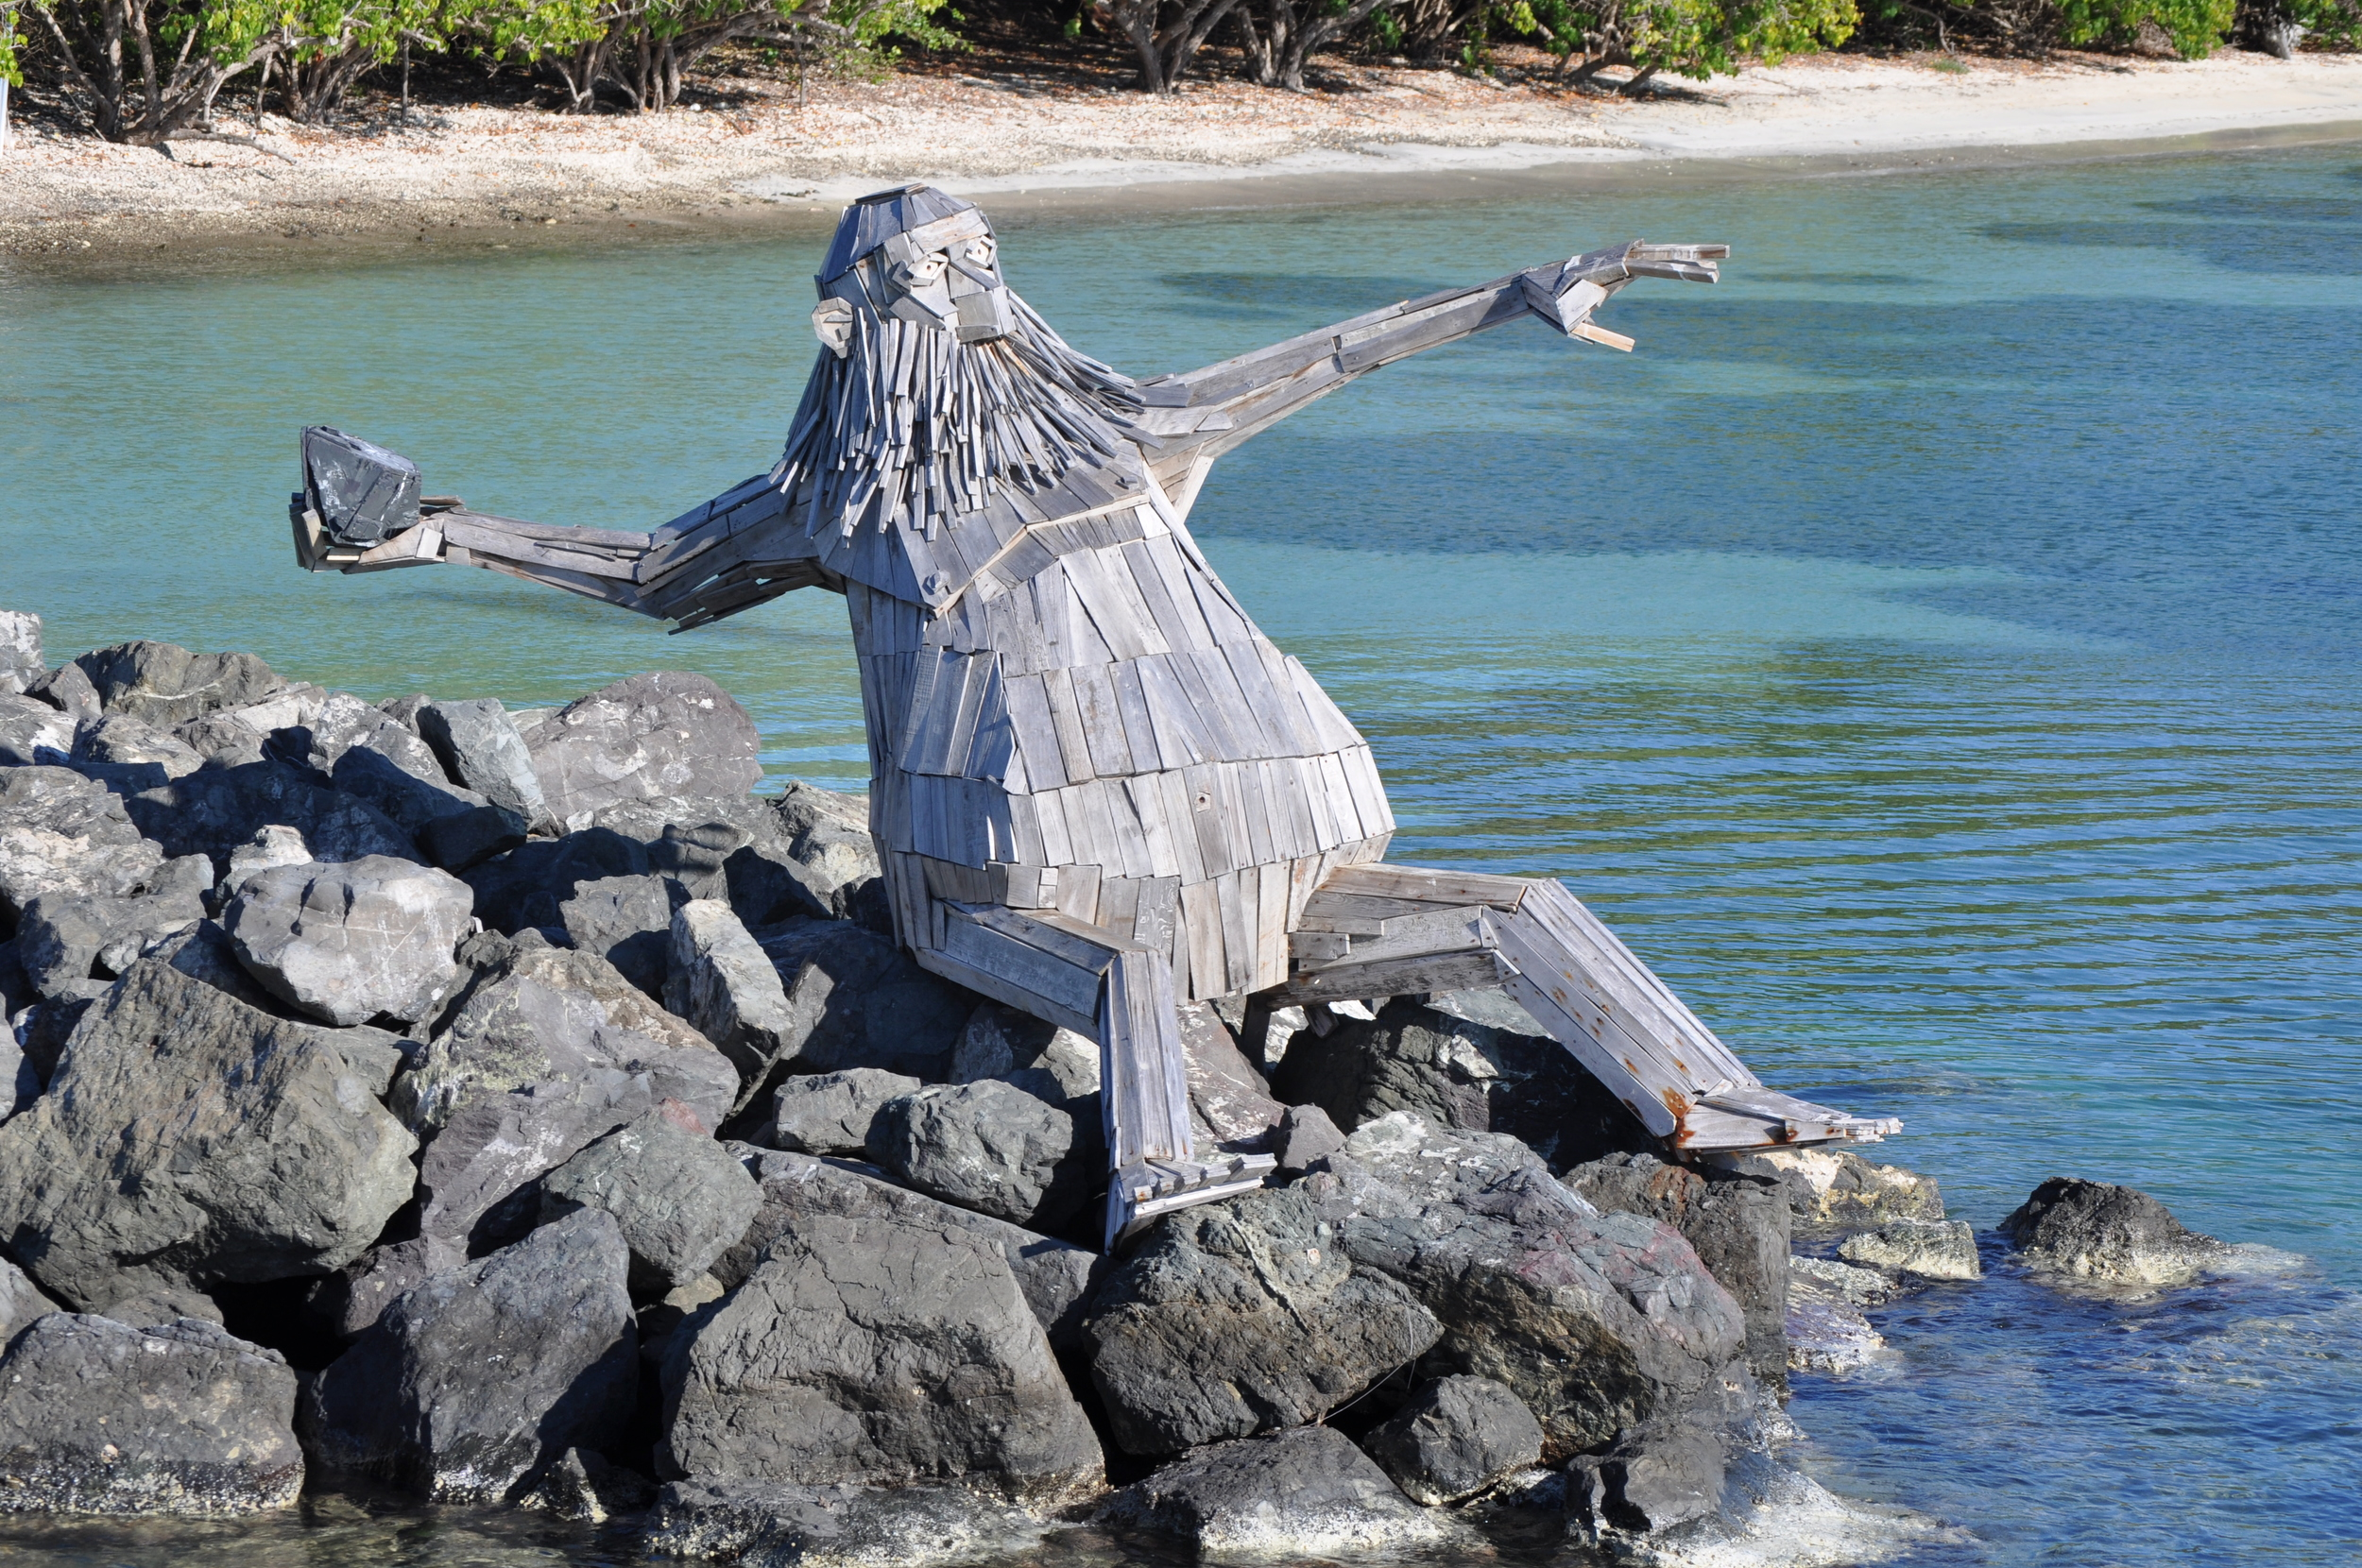 """The wooden art piece called Hector """"The Protector"""" was the contribution of artist Thomas Dambos to the Culebra Es Ley art festival. Photo: Pamy Rojas"""